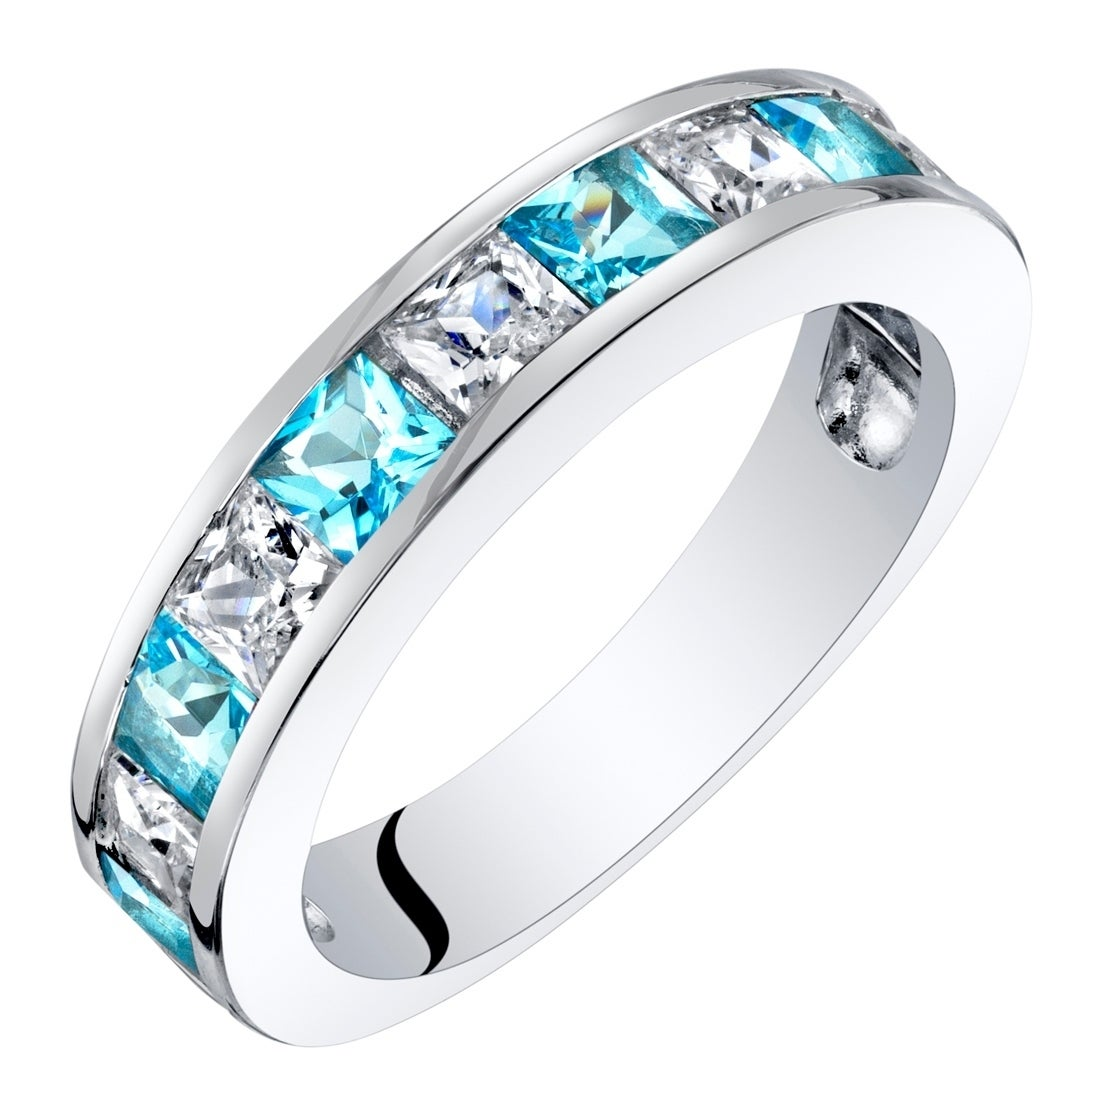 It is just a picture of Sterling Silver Princess Cut Swiss Blue Topaz Wedding Ring Band 35 Carat